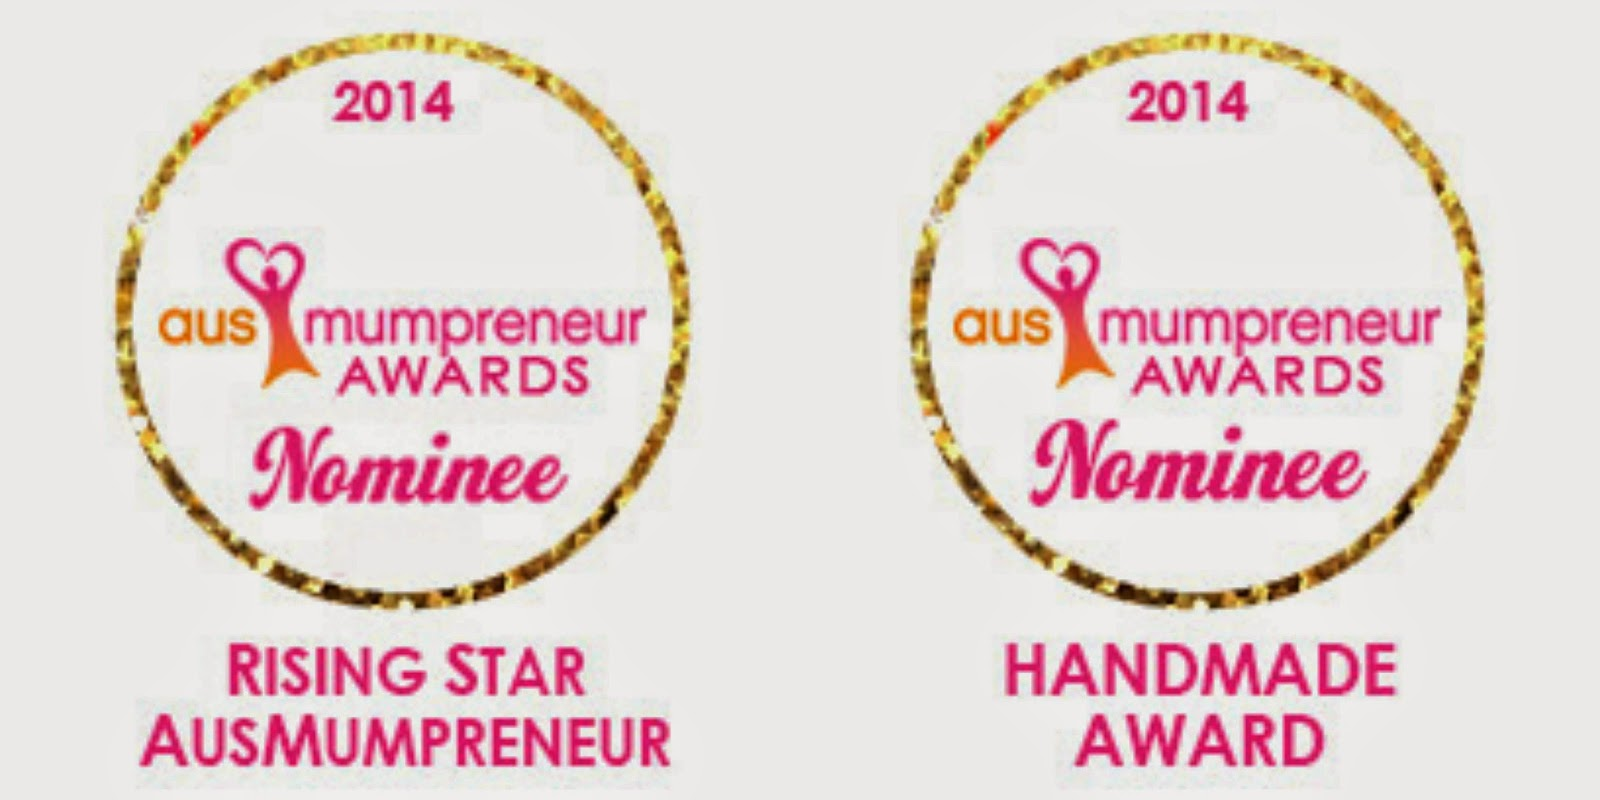 ausmumpreneur nominee rising star handmade award